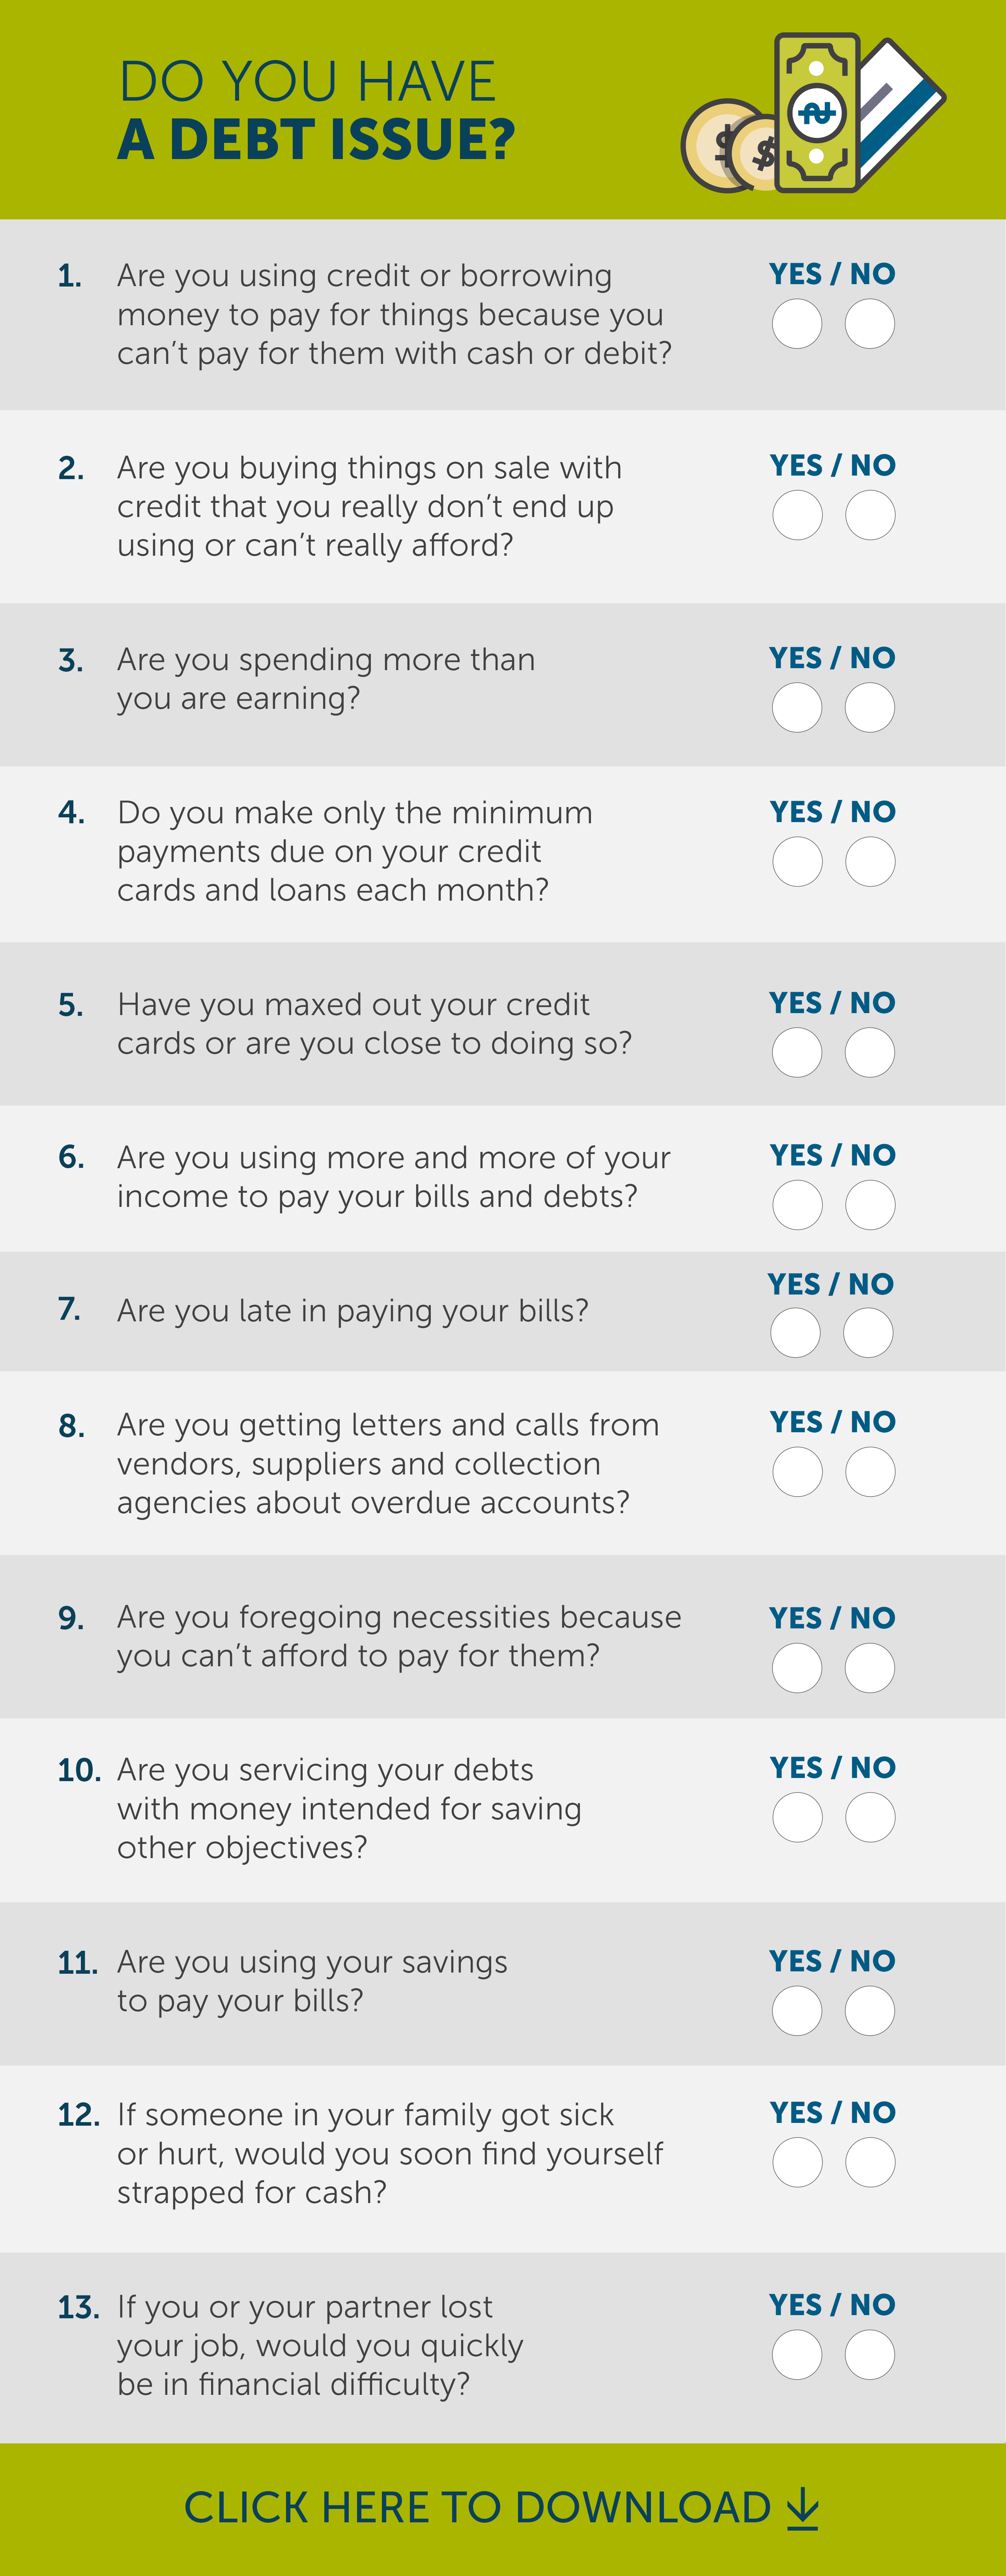 Do you have a debt issue test